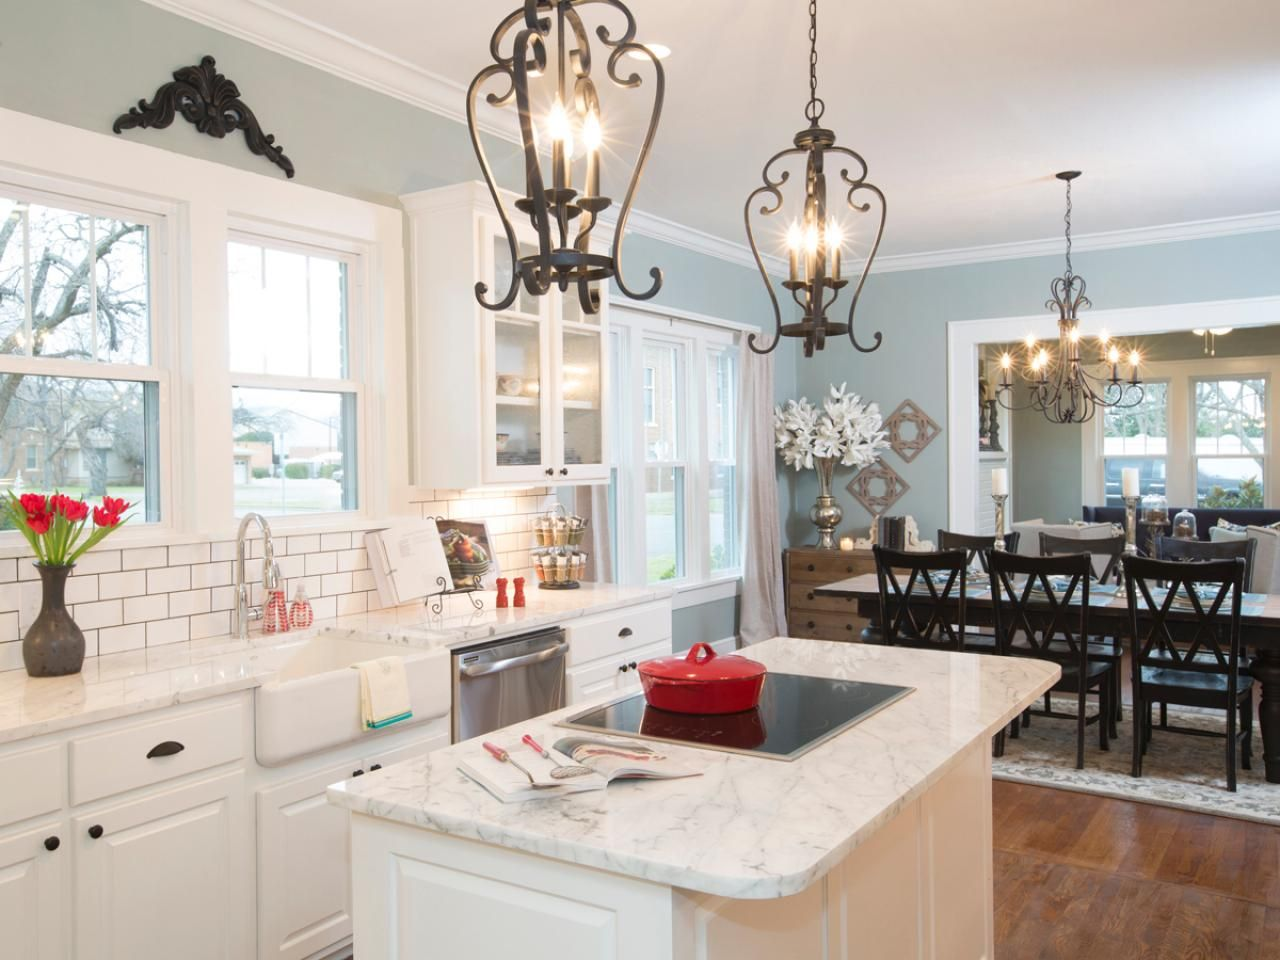 Hgtv fixer upper kitchen colors - Lights